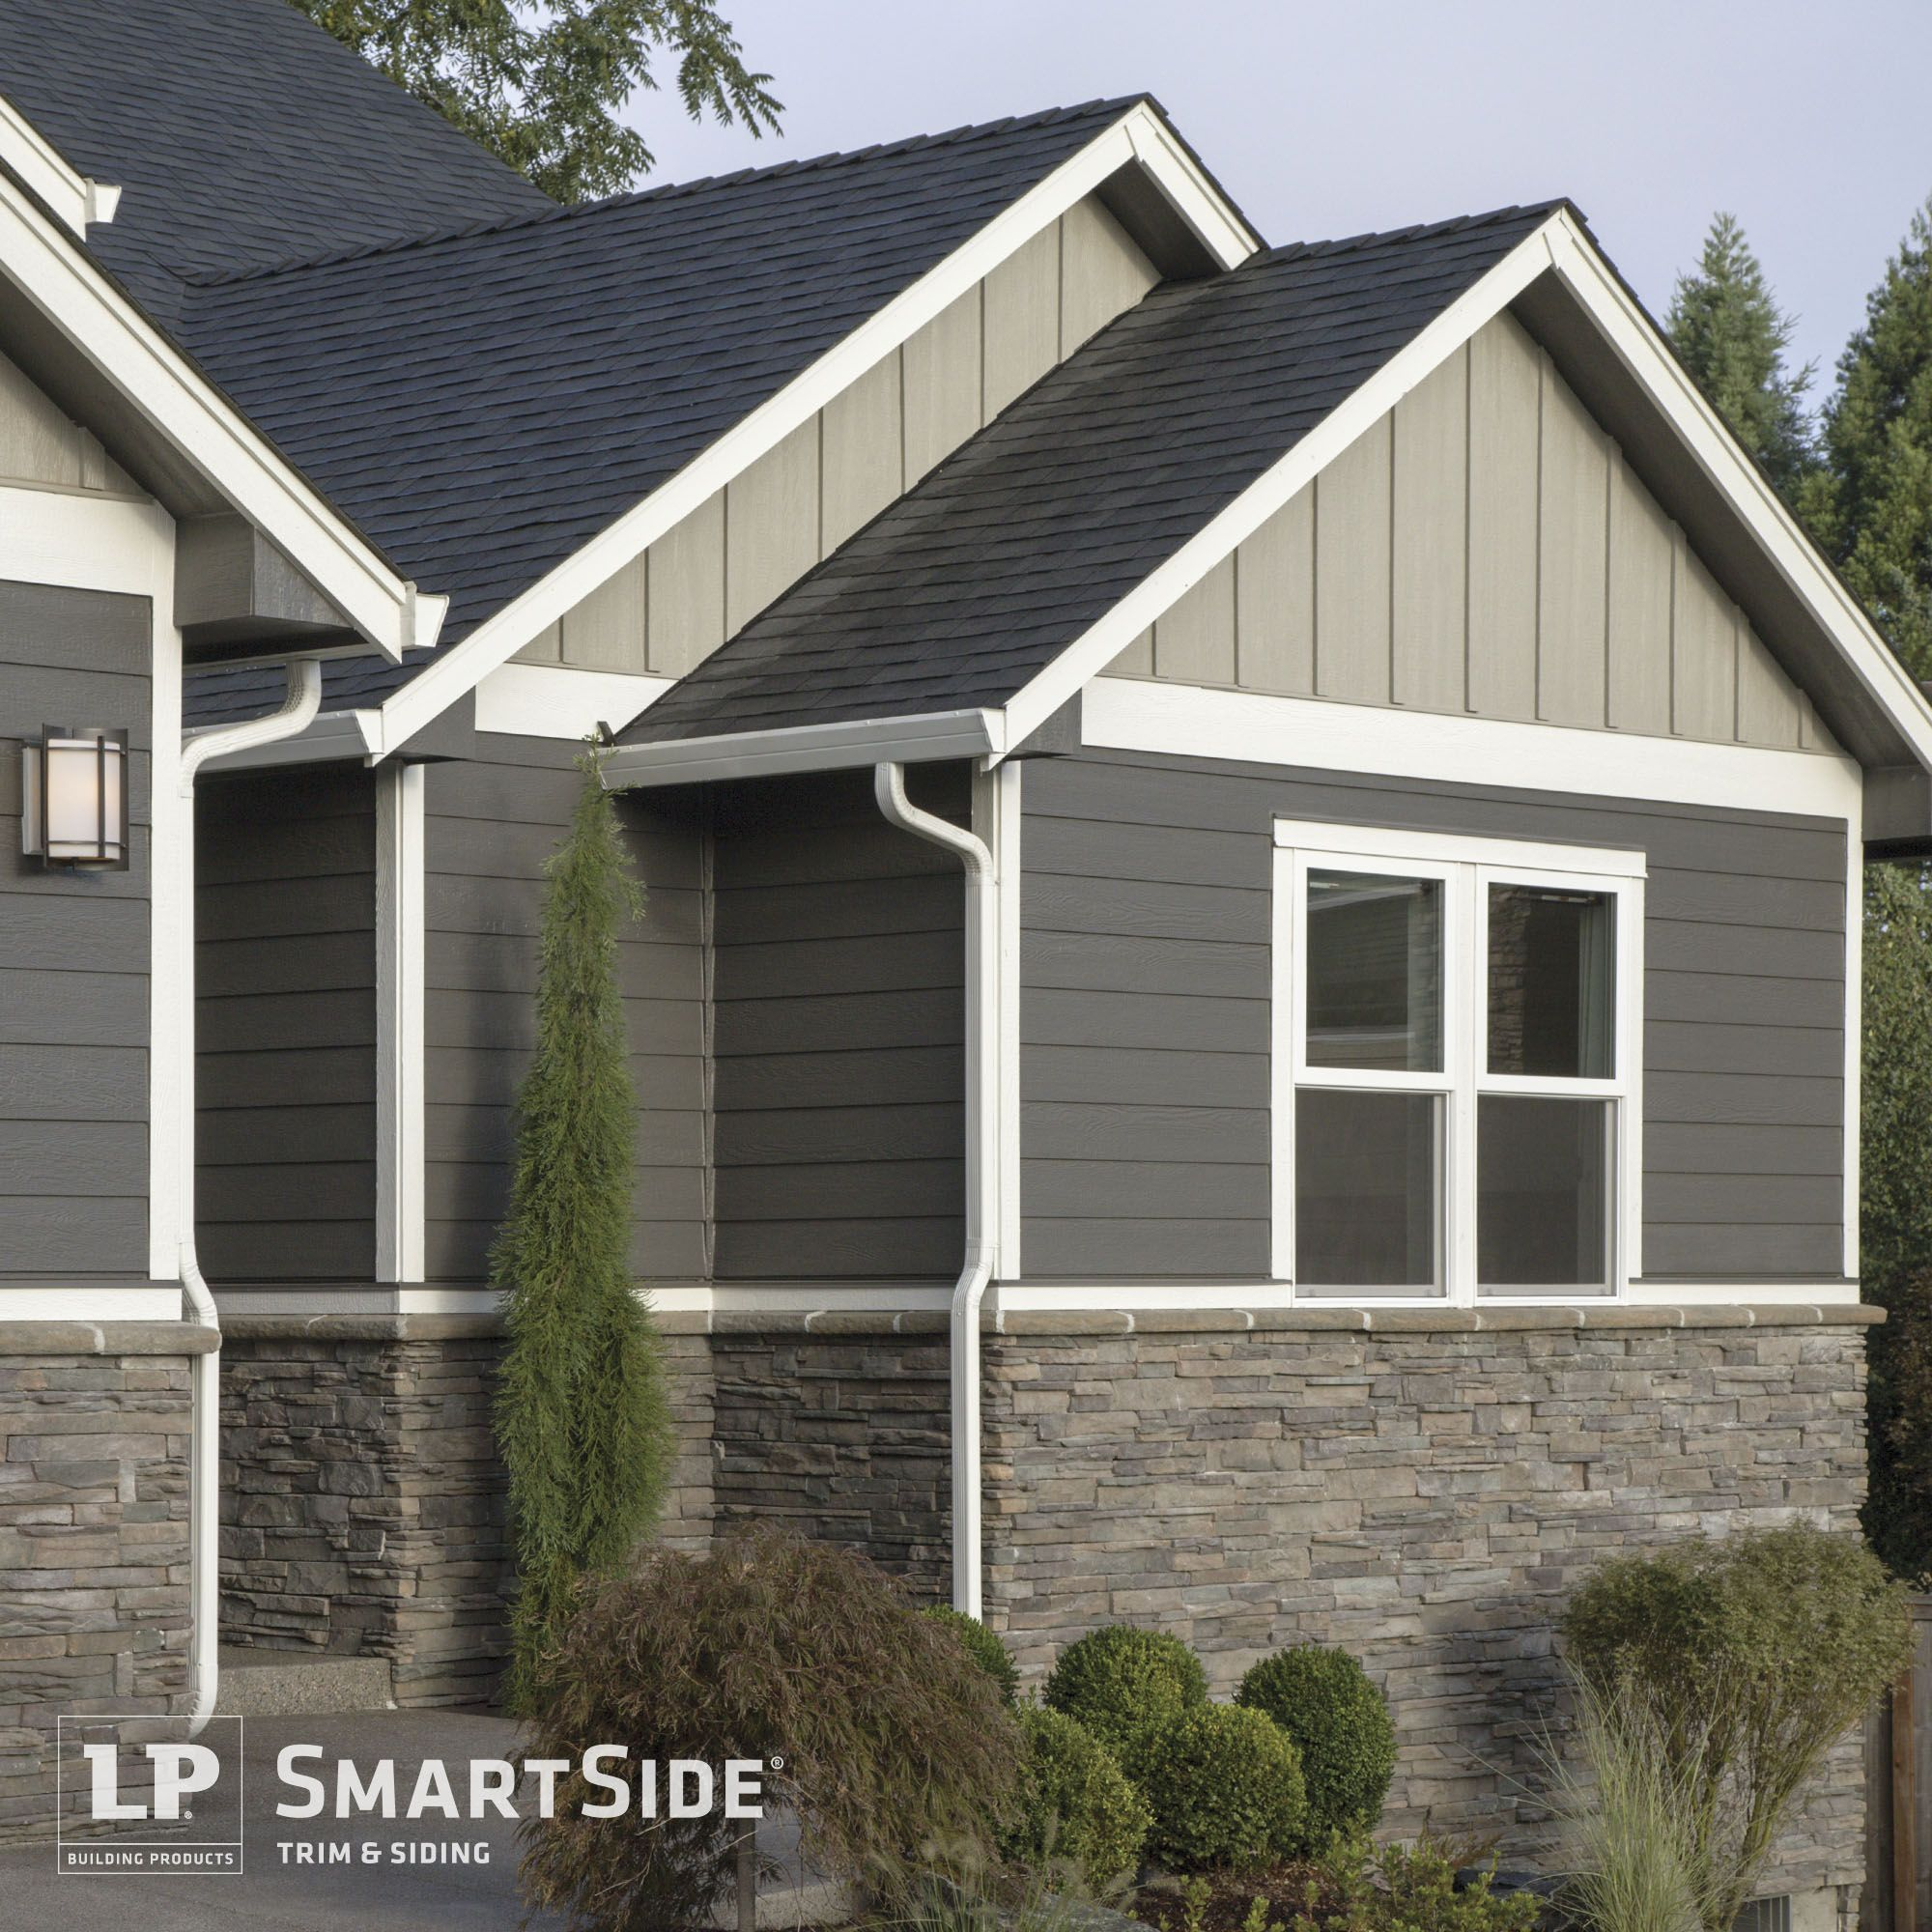 Lp smartside trim lap and panel siding pair with for Horizontal wood siding panels